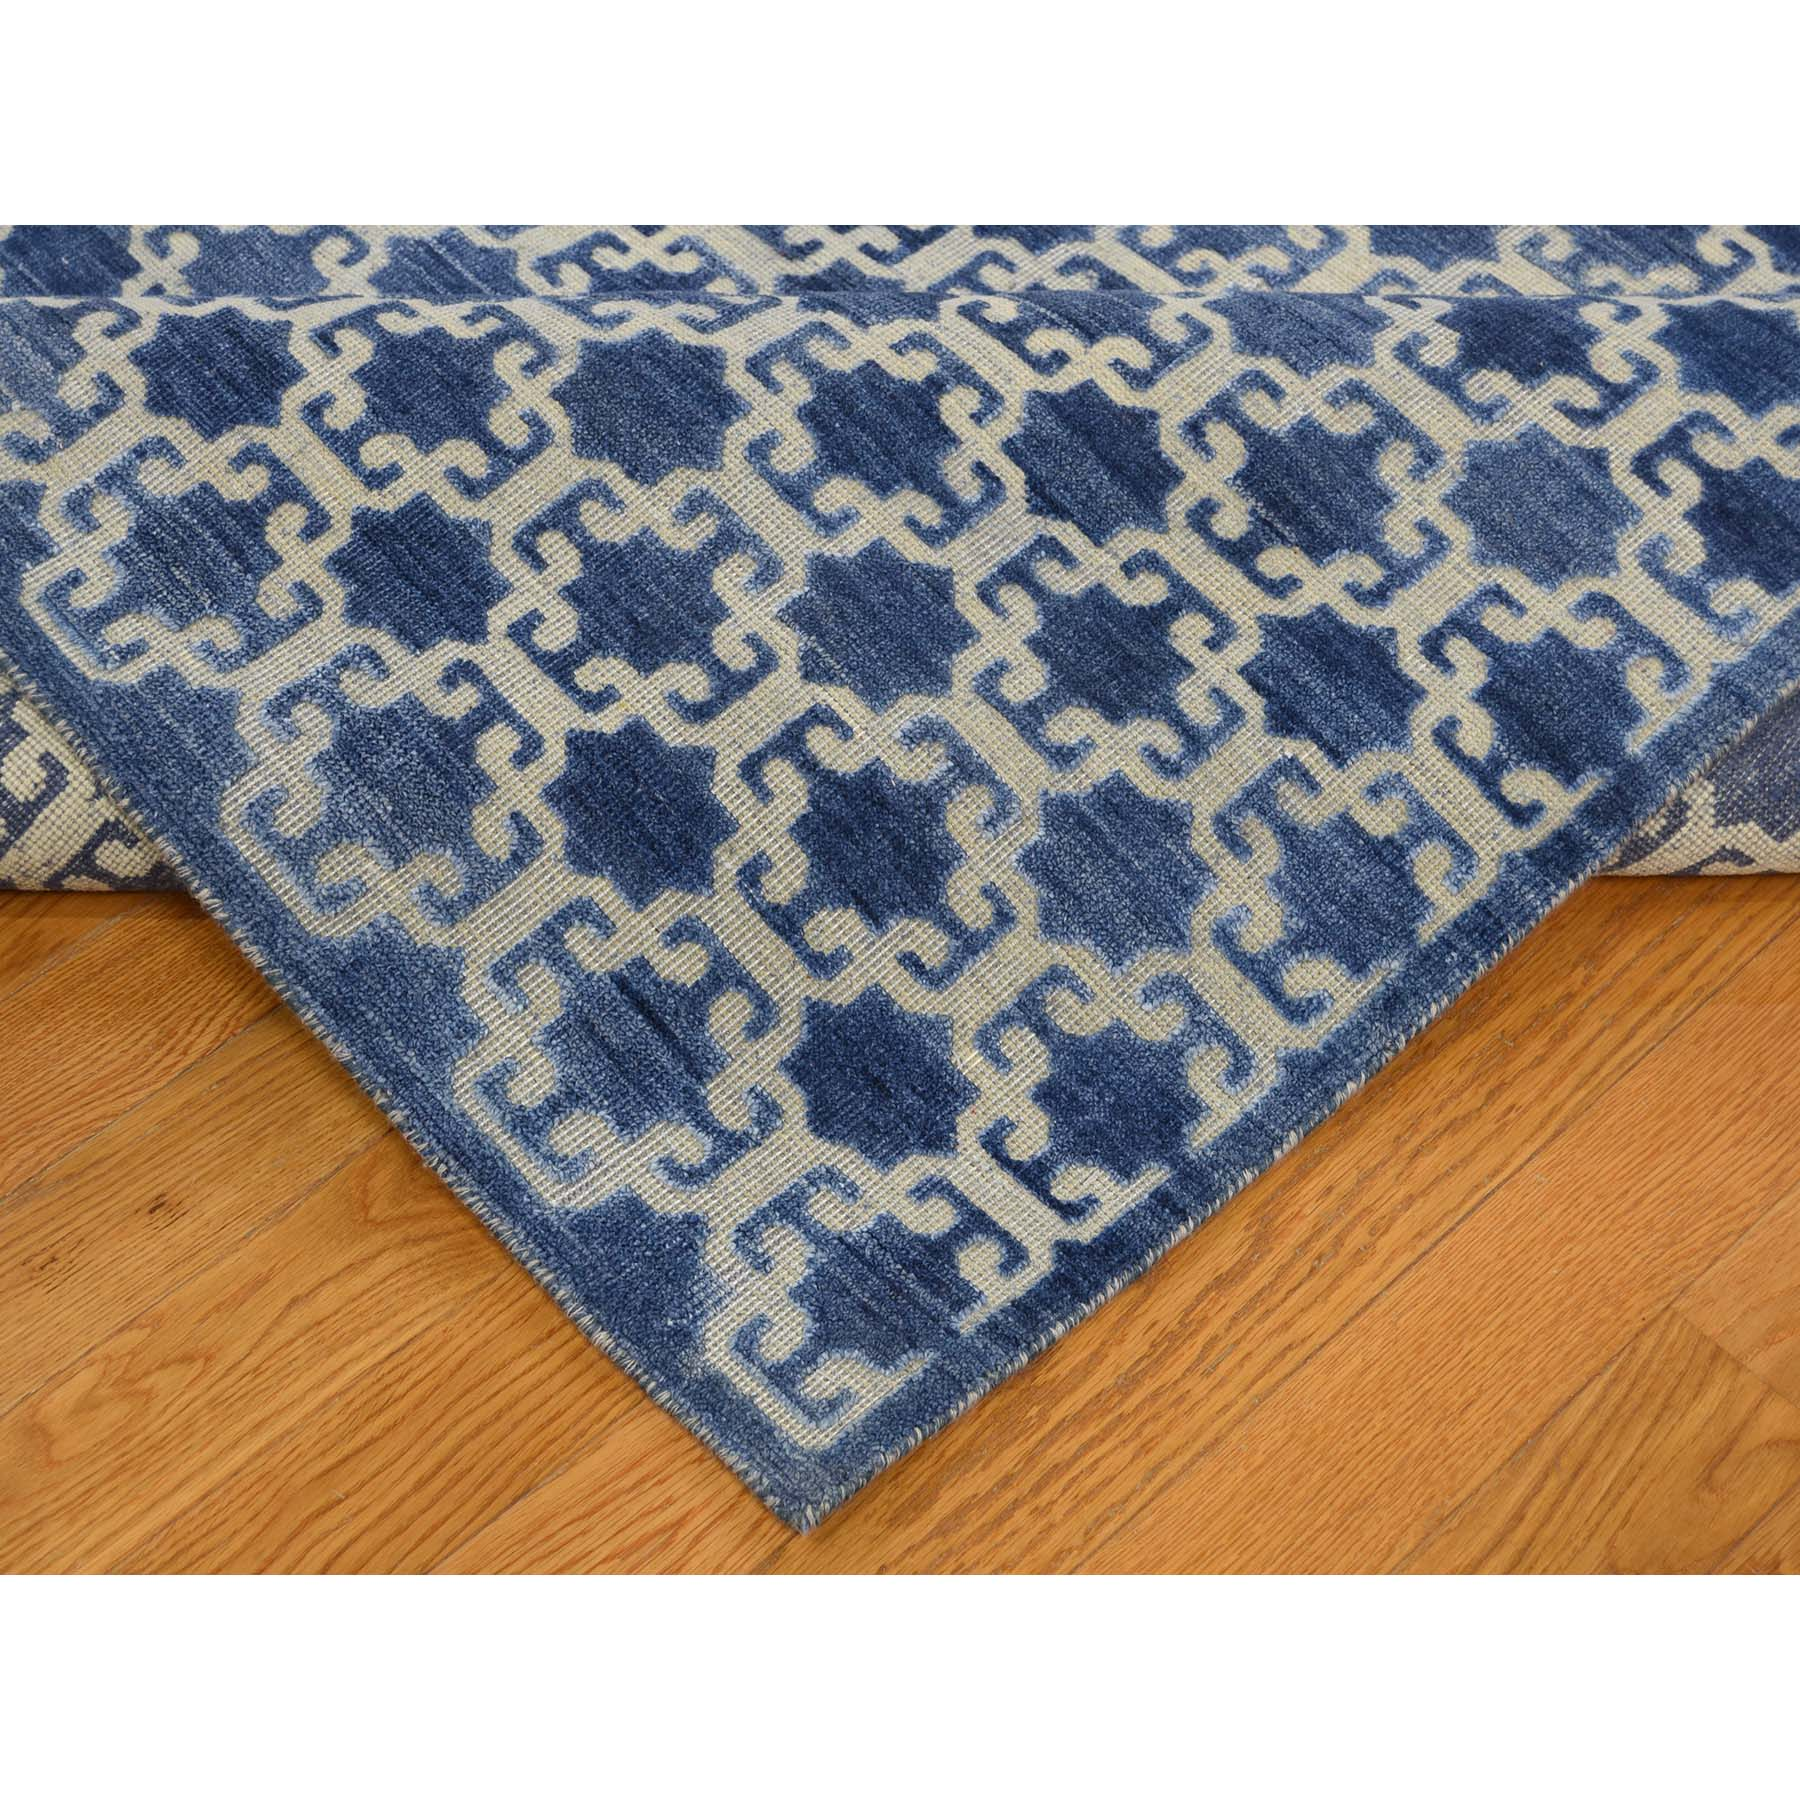 8-1 x10- Wool And Silk Star Design Hand-Knotted Oriental Rug